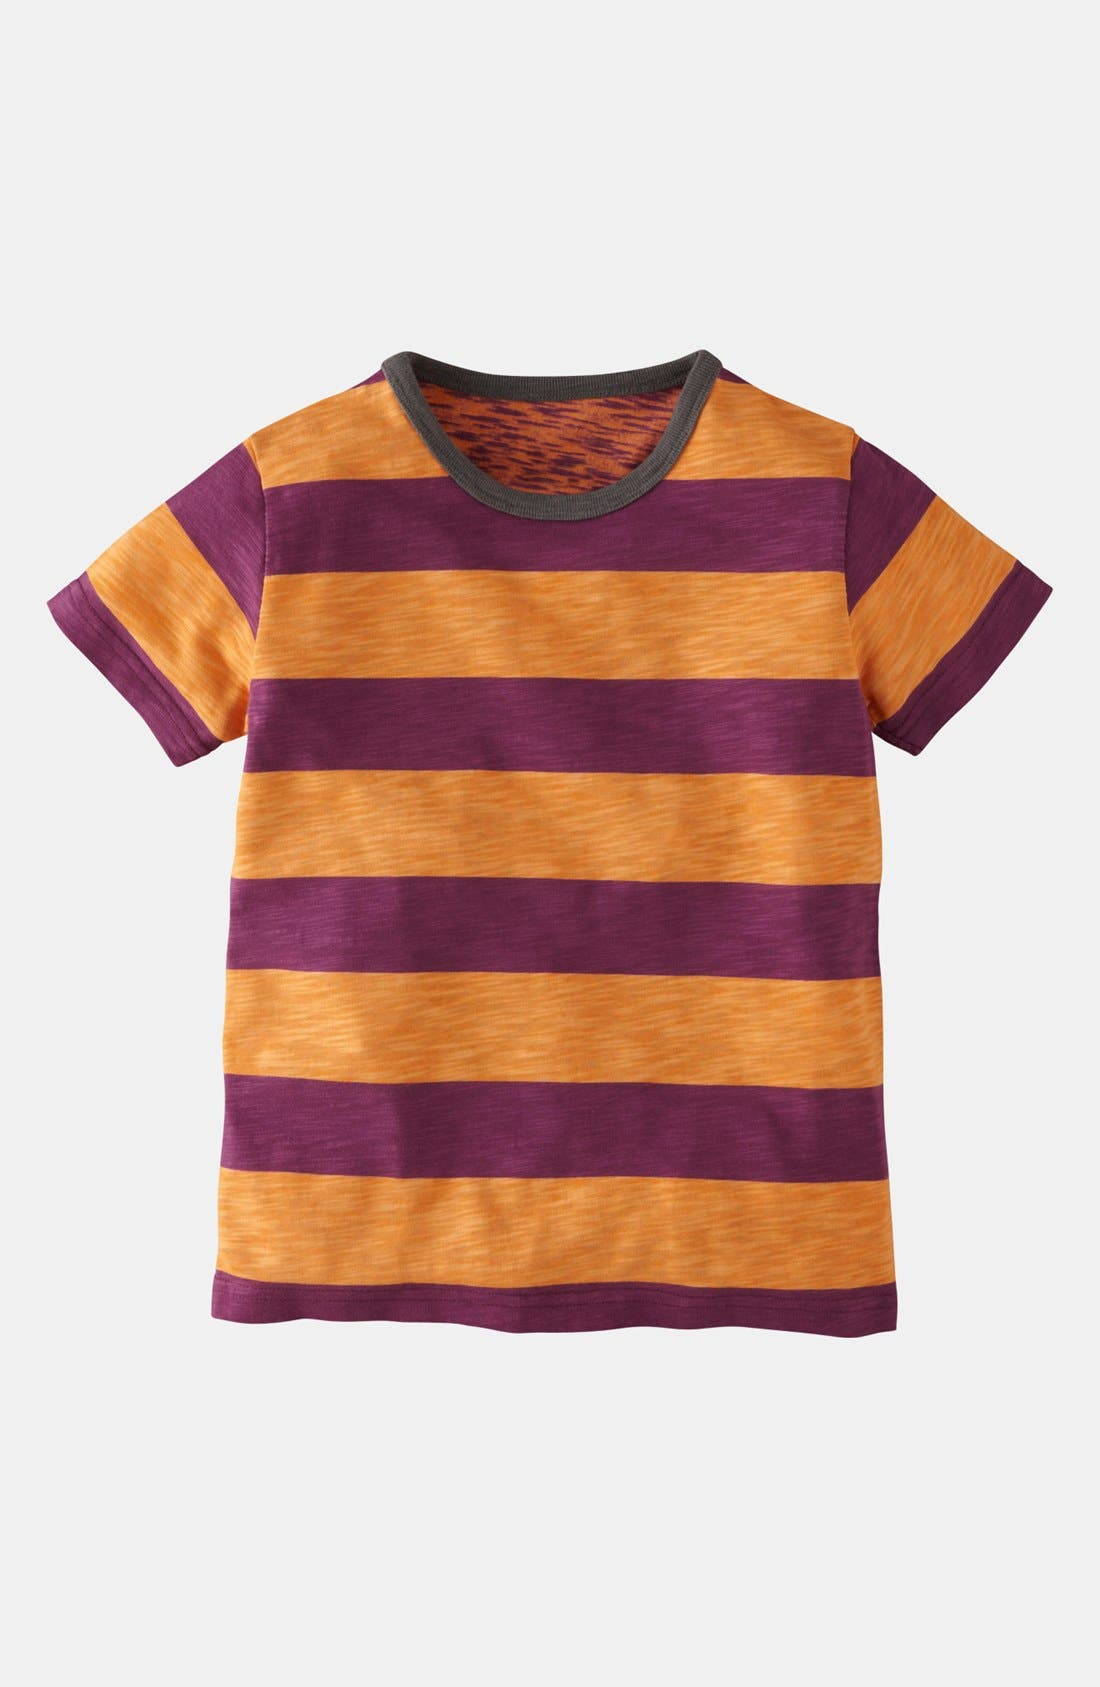 Alternate Image 1 Selected - Mini Boden 'Stripy' T-Shirt (Little Boys & Big Boys)